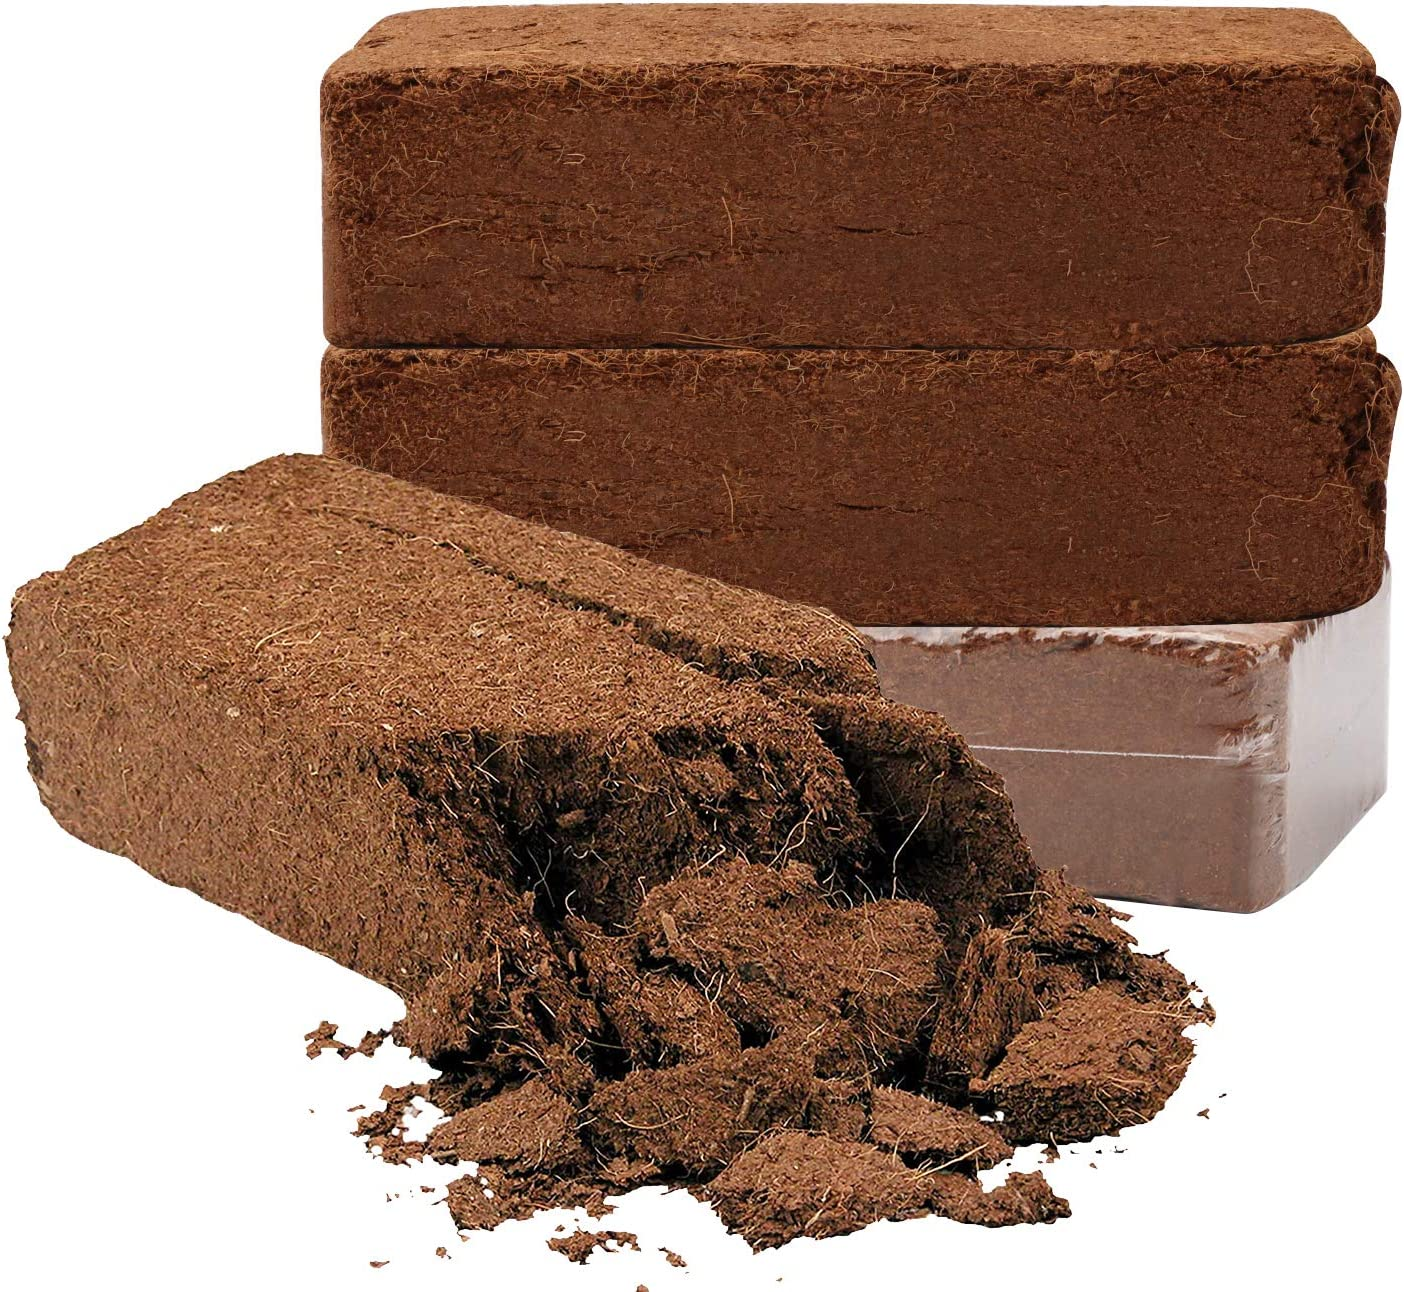 Coco Coir Bricks Potting Beauty products Soil Very popular Plants Flowers Vegetables for Her